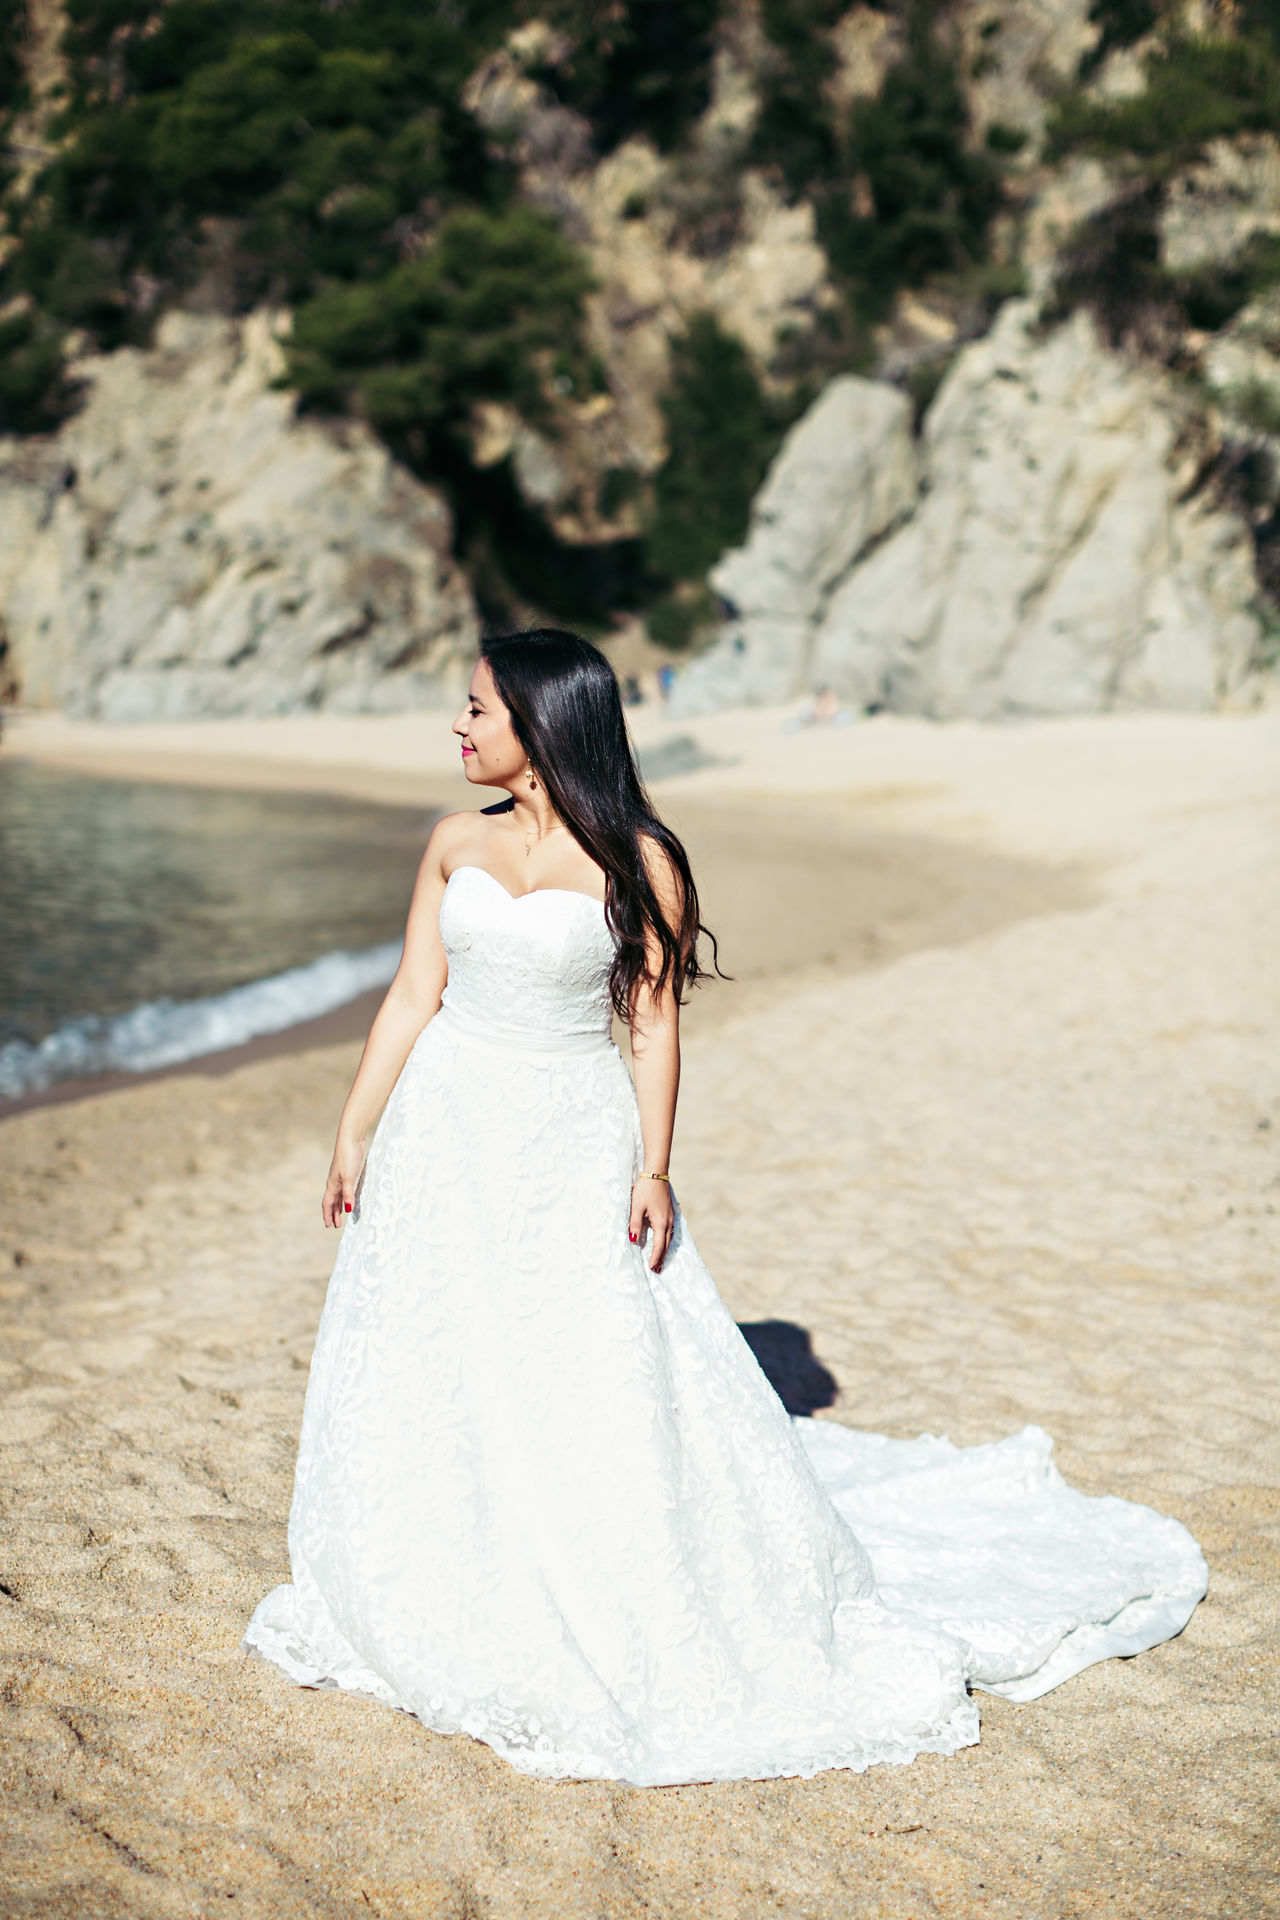 Adult Beach Beautiful Woman Bride Day Full Length Happiness Life Events Lifestyles Nature One Person Outdoors People Real People Sand Standing Wedding Wedding Dress Women Young Adult Young Women